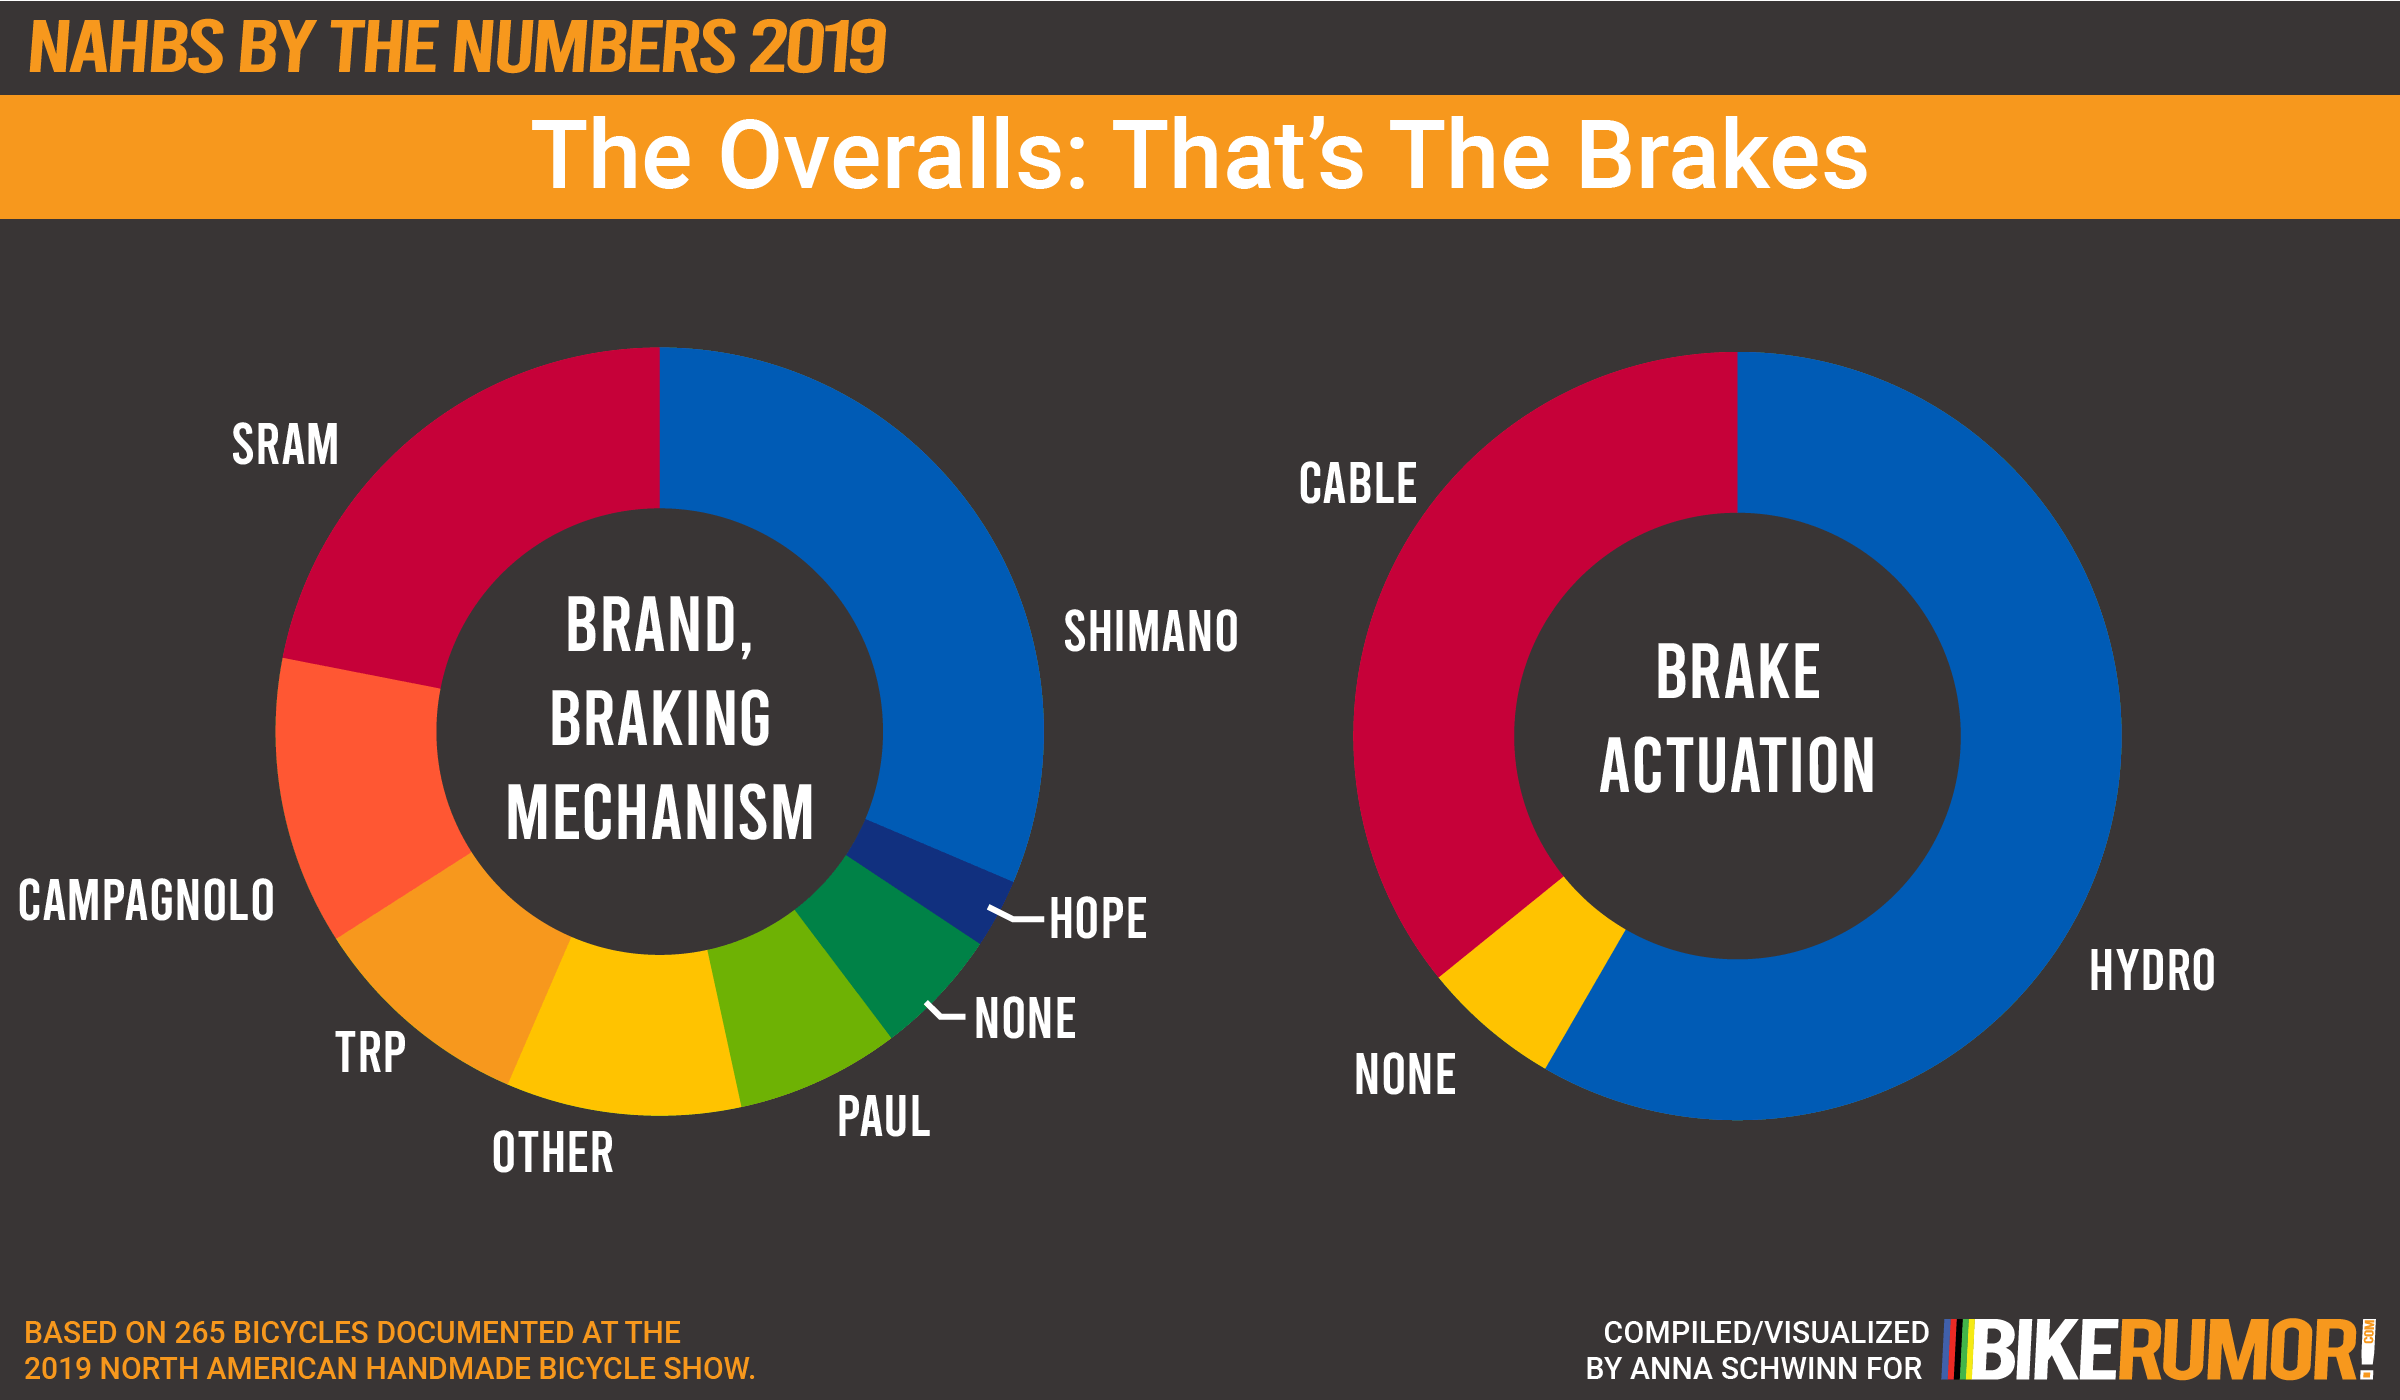 NAHBS By The Numbers 2019, The Overalls, Brakes